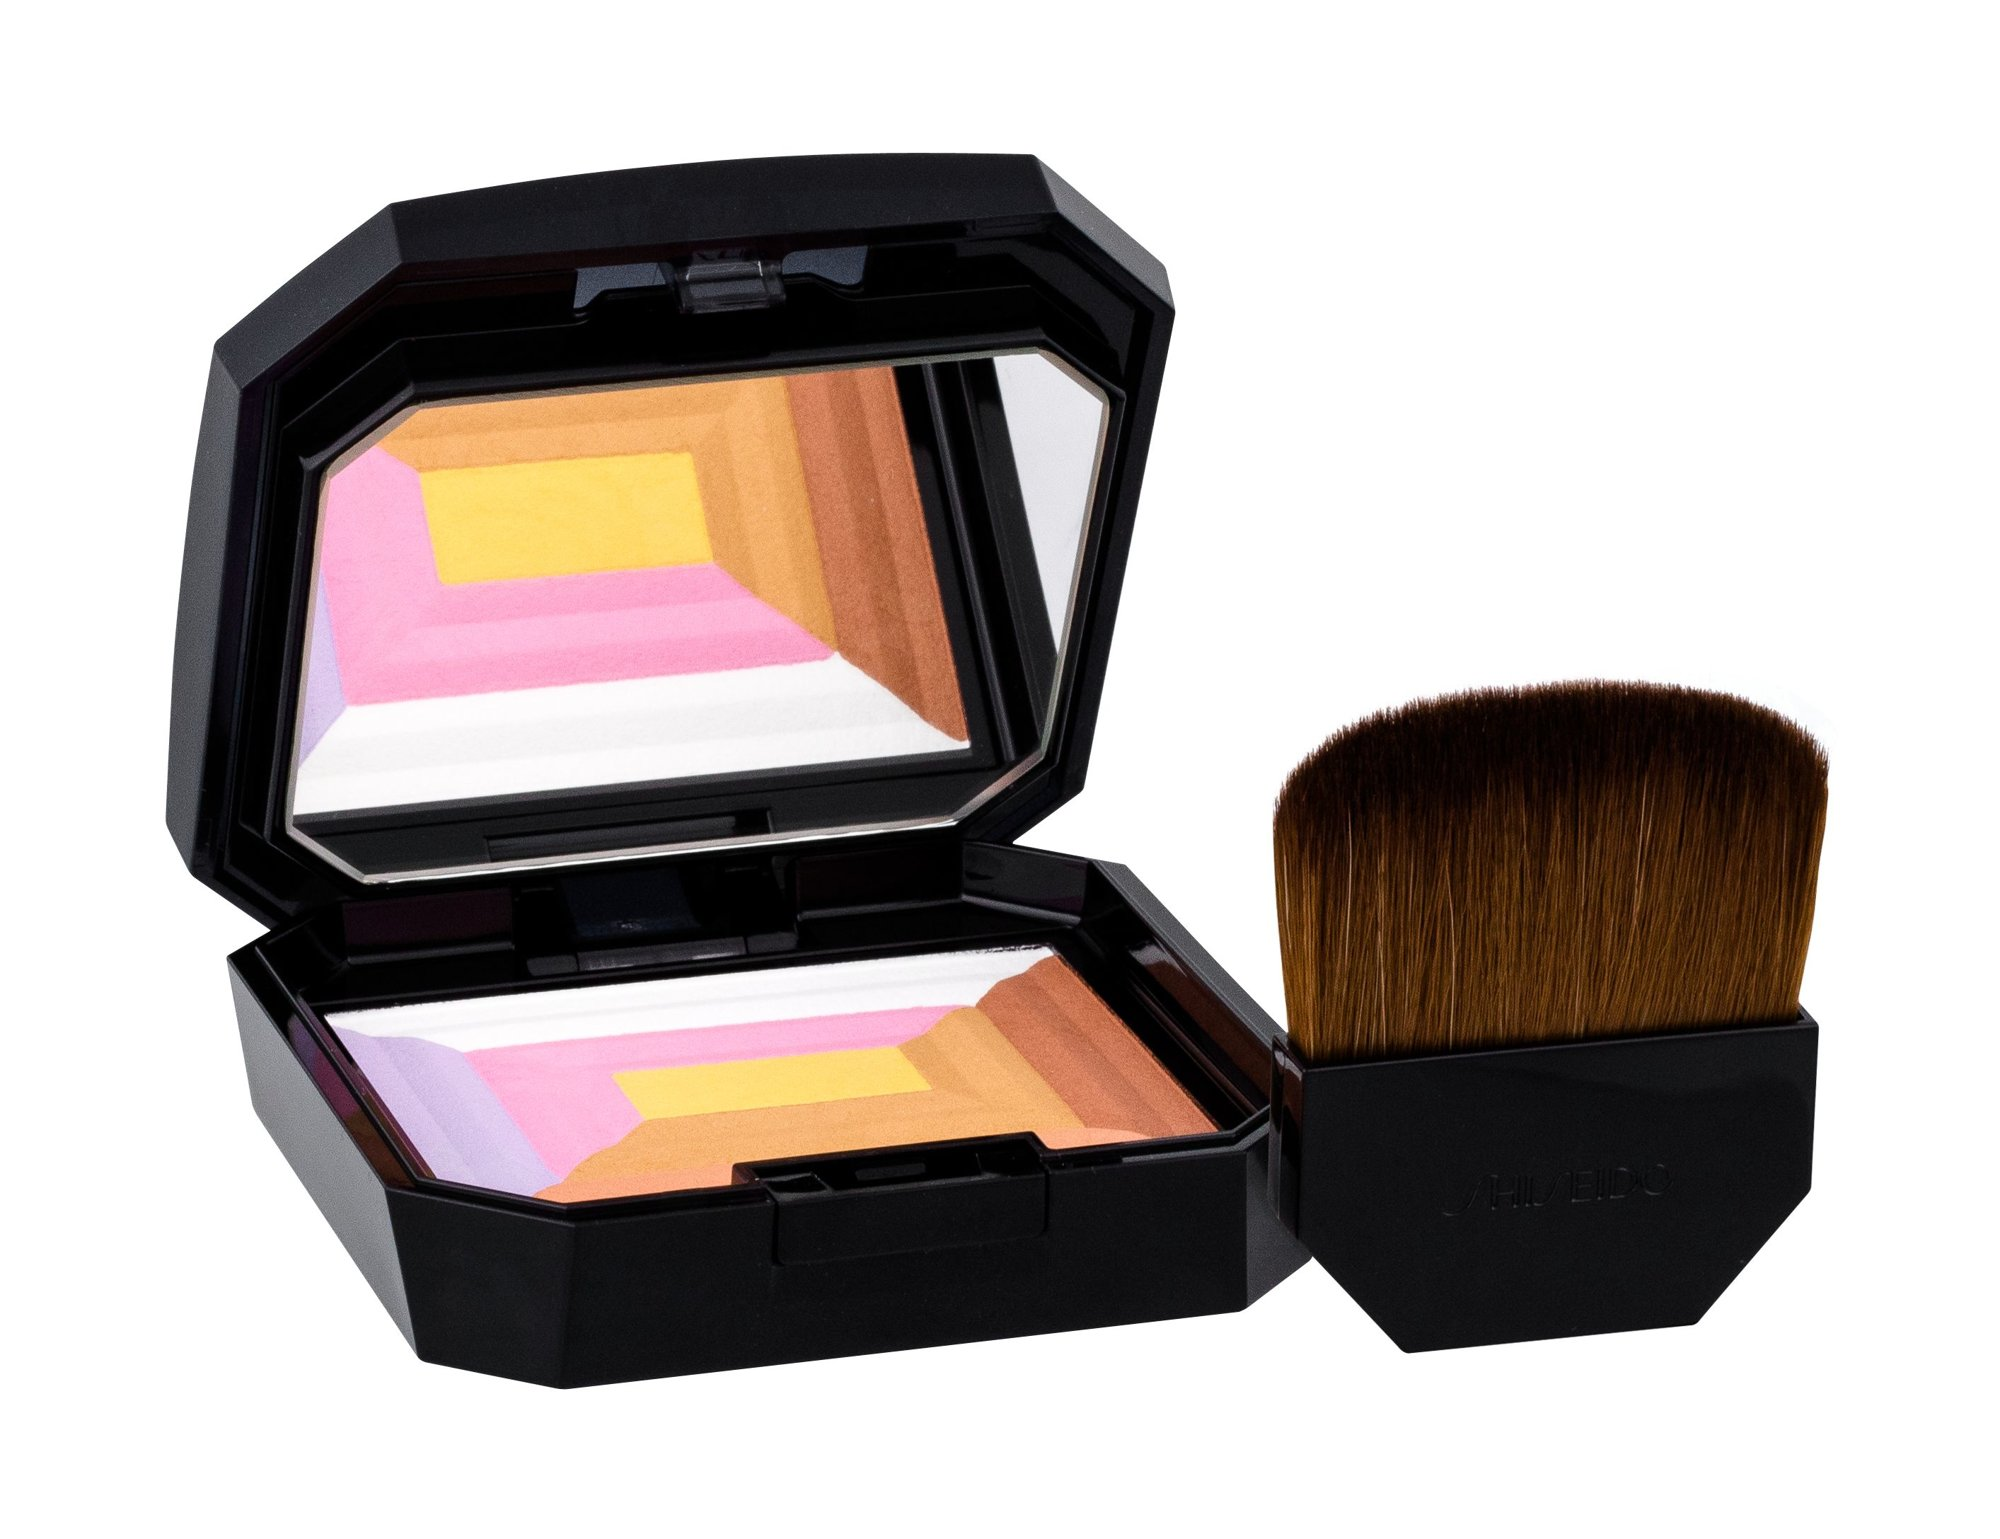 Shiseido 7 Lights Powder Illuminator Blush 10ml